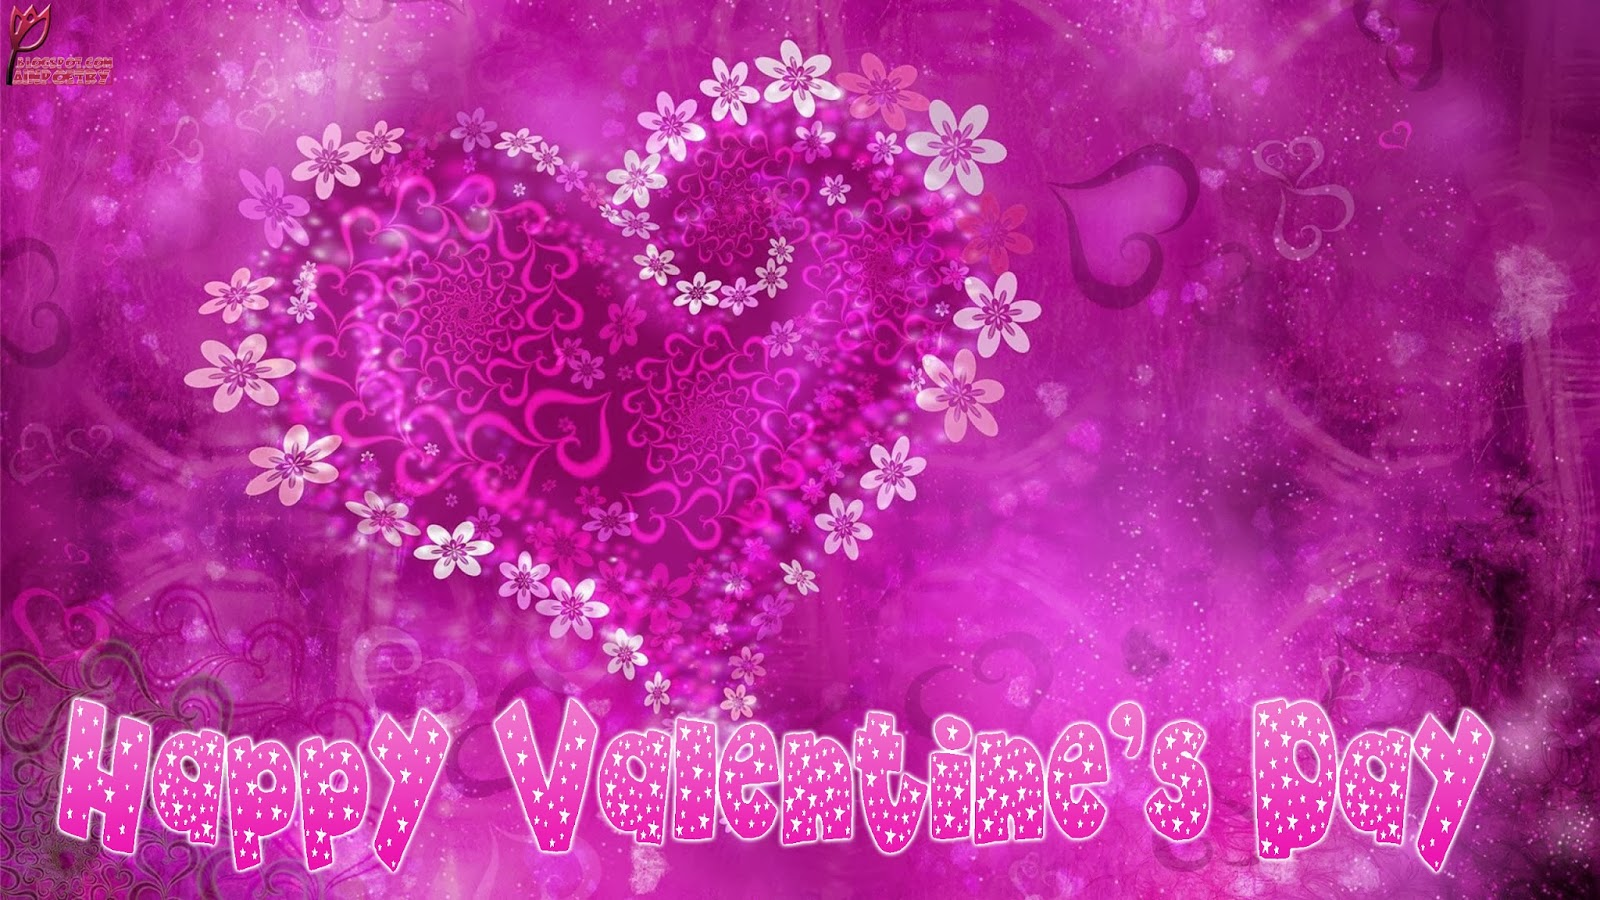 Happy-Valentine's-Day-Wallpaper-Image-Photo-Wishes-HD-With-Heart